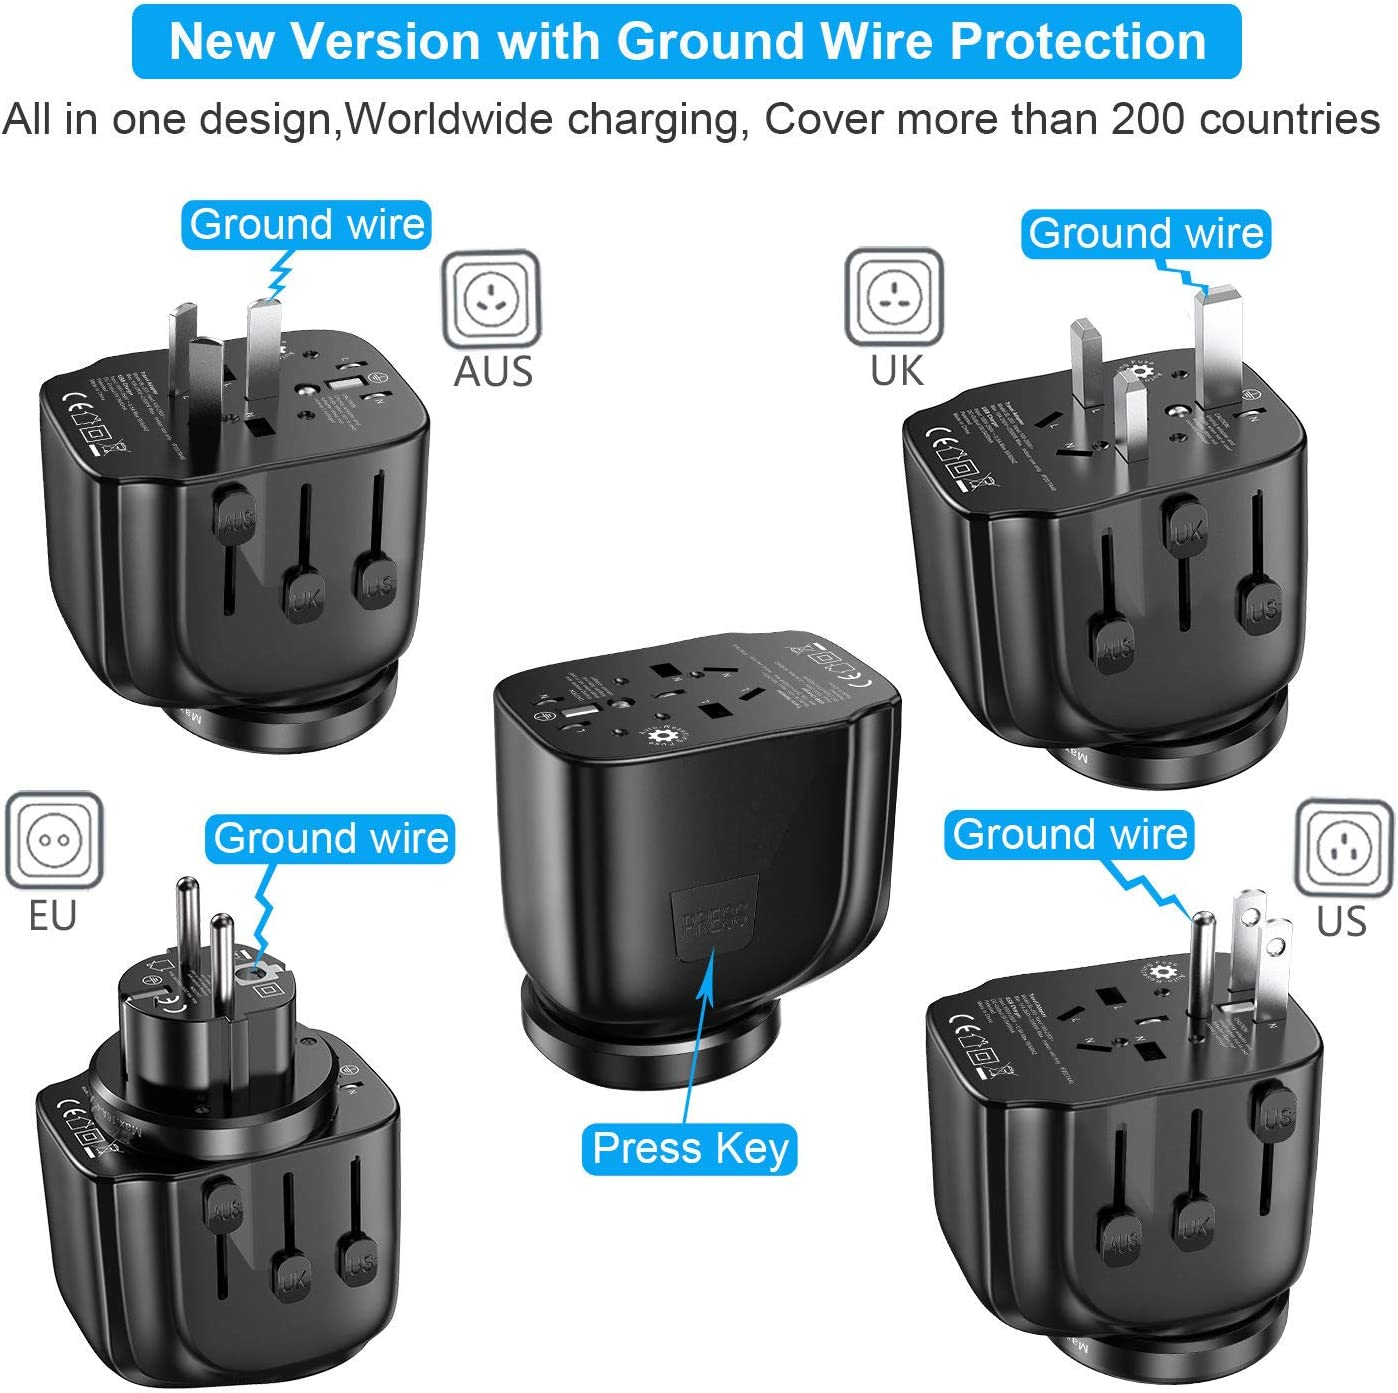 SAUNORCH Universal Travel Adapter Accessories UK European Adapter Plugs Adapters for Hair Dryer US CA,AU EU Italy Asia -Black International Power Adapter W// 3.4A Dual USB Smart Wall Charger